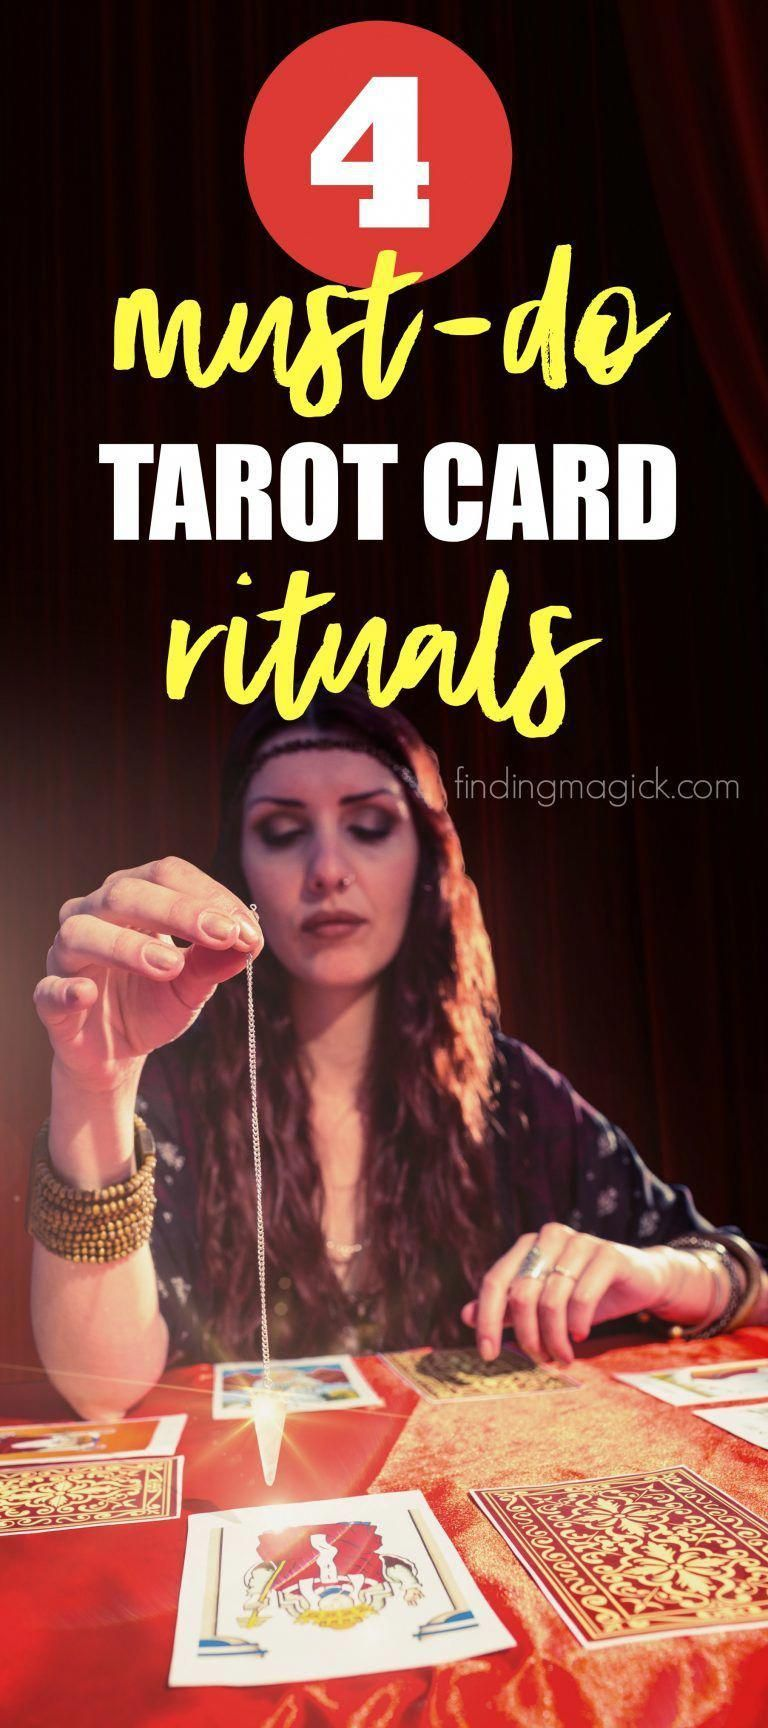 Did you know you can cleanse tarot decks in 4 easy steps